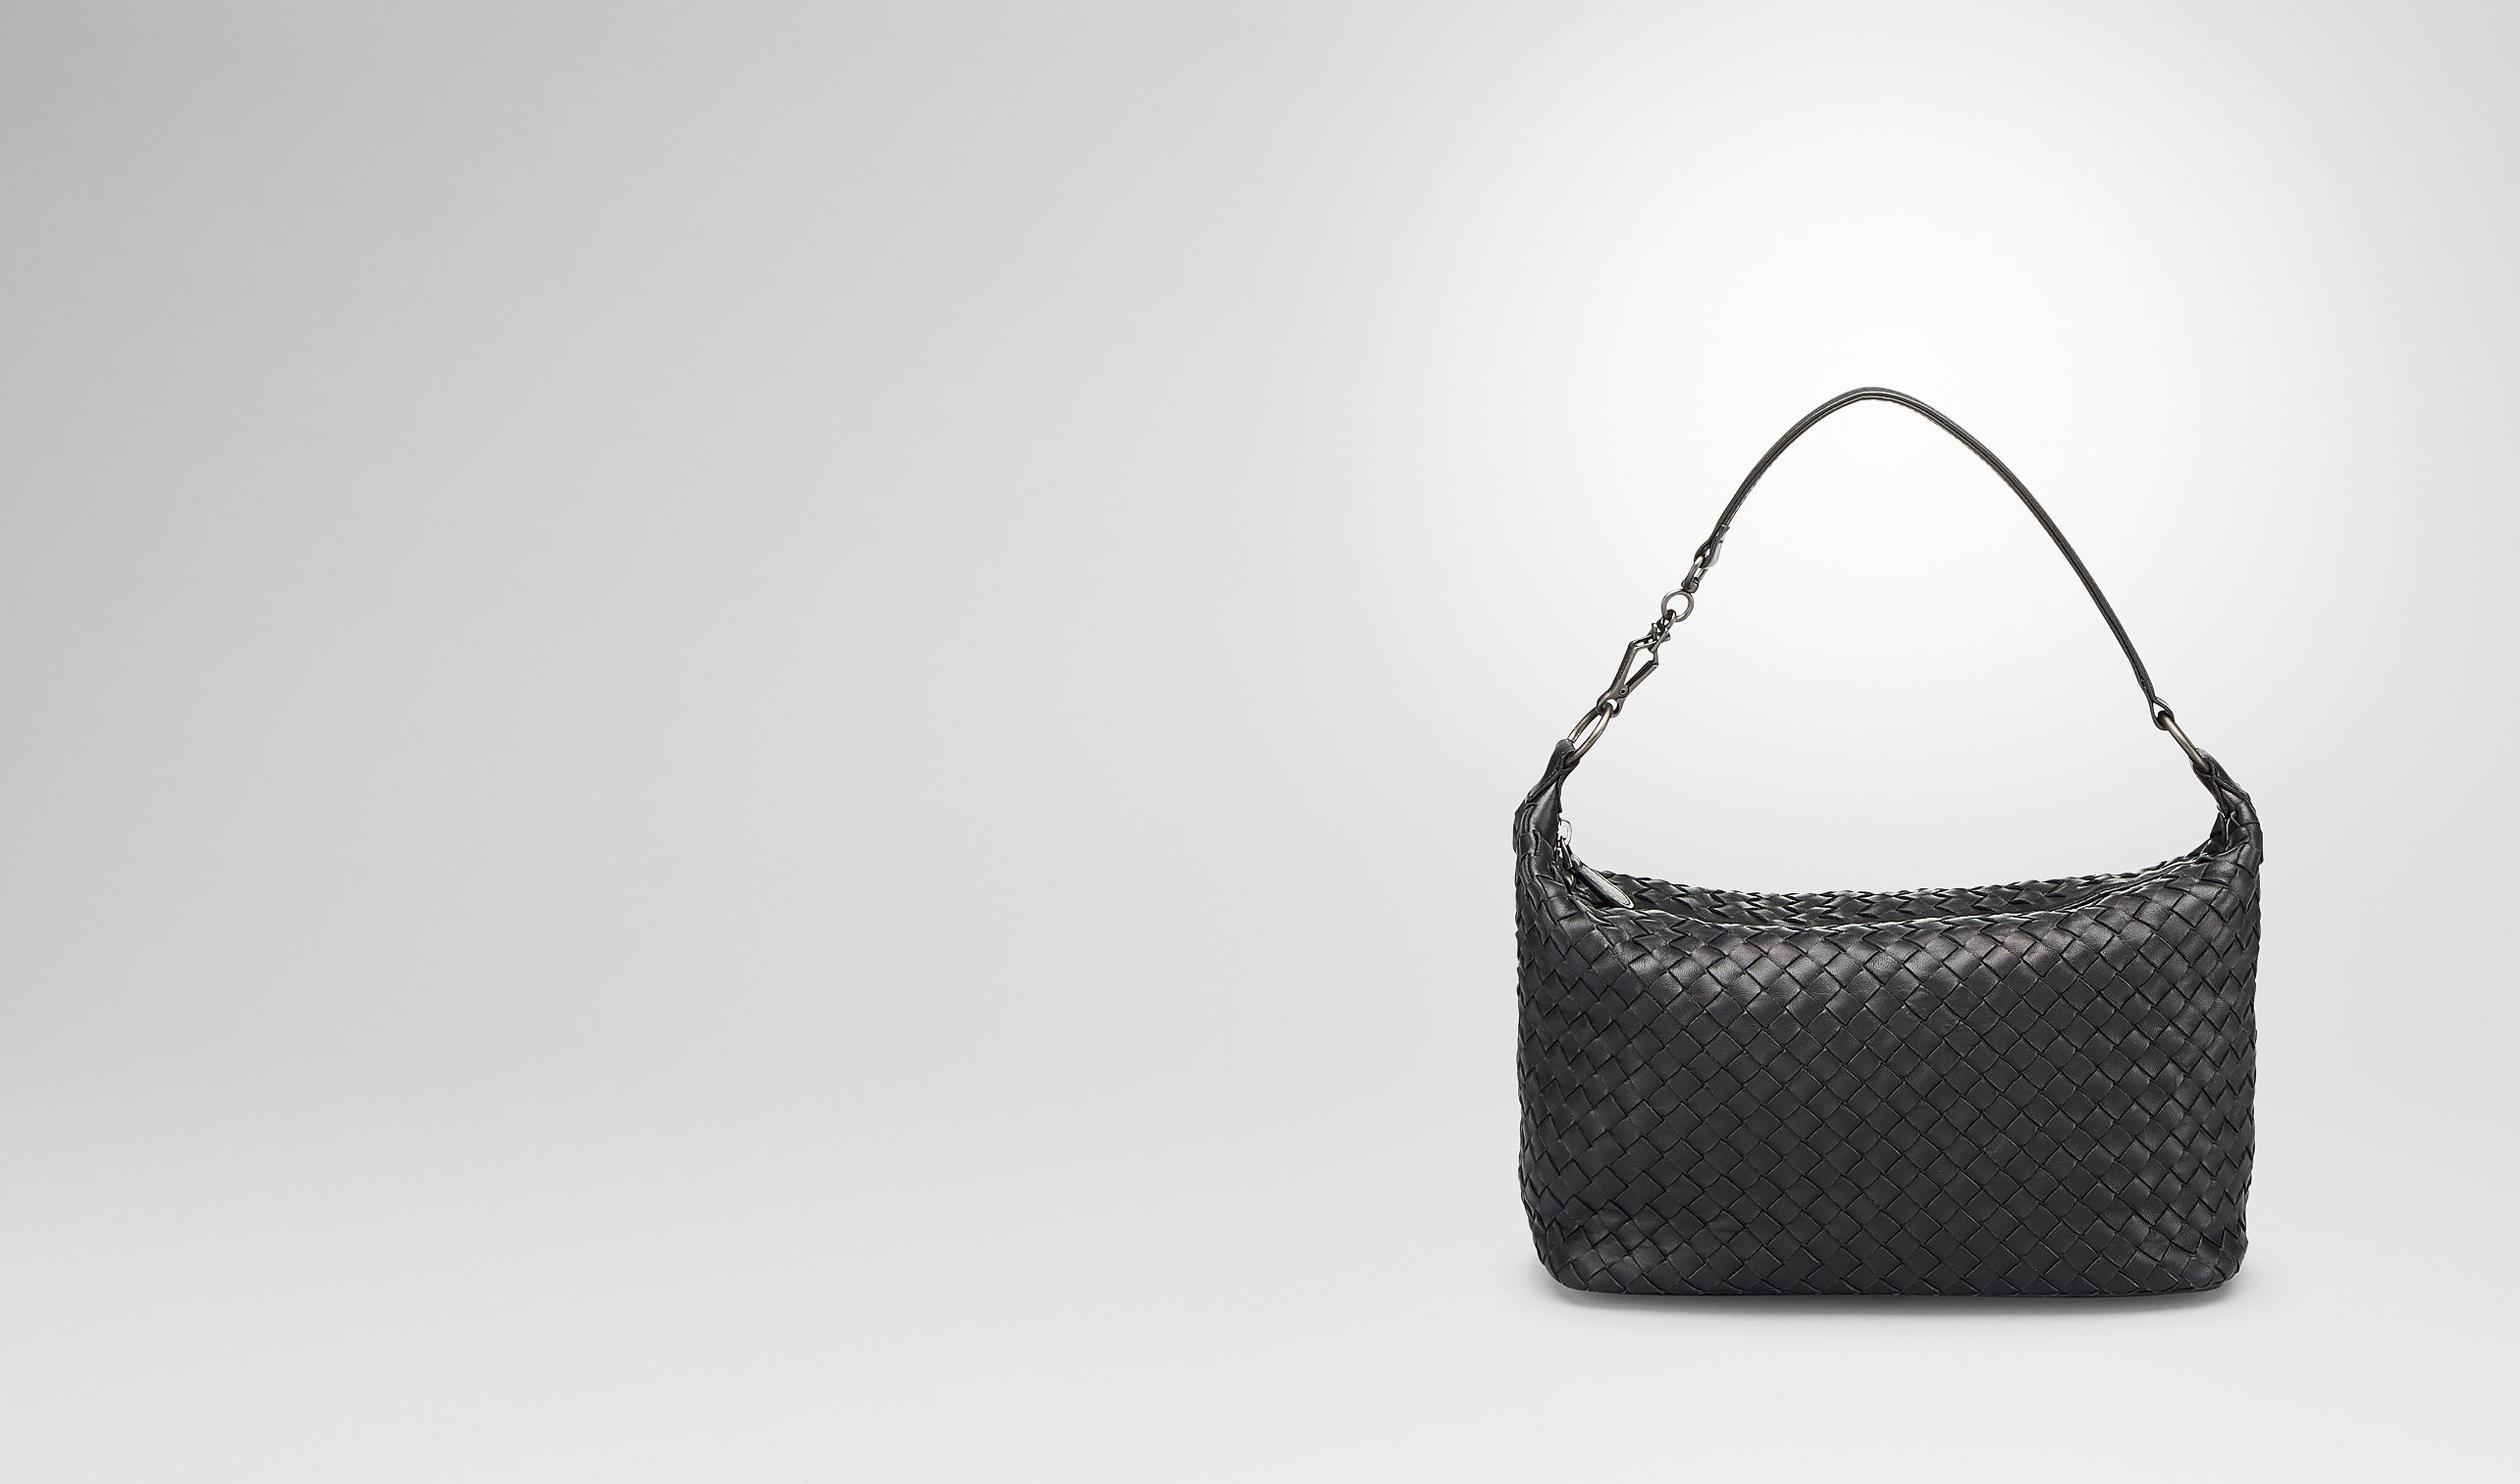 BOTTEGA VENETA Shoulder or hobo bag D SMALL SHOULDER BAG IN NERO INTRECCIATO NAPPA pl